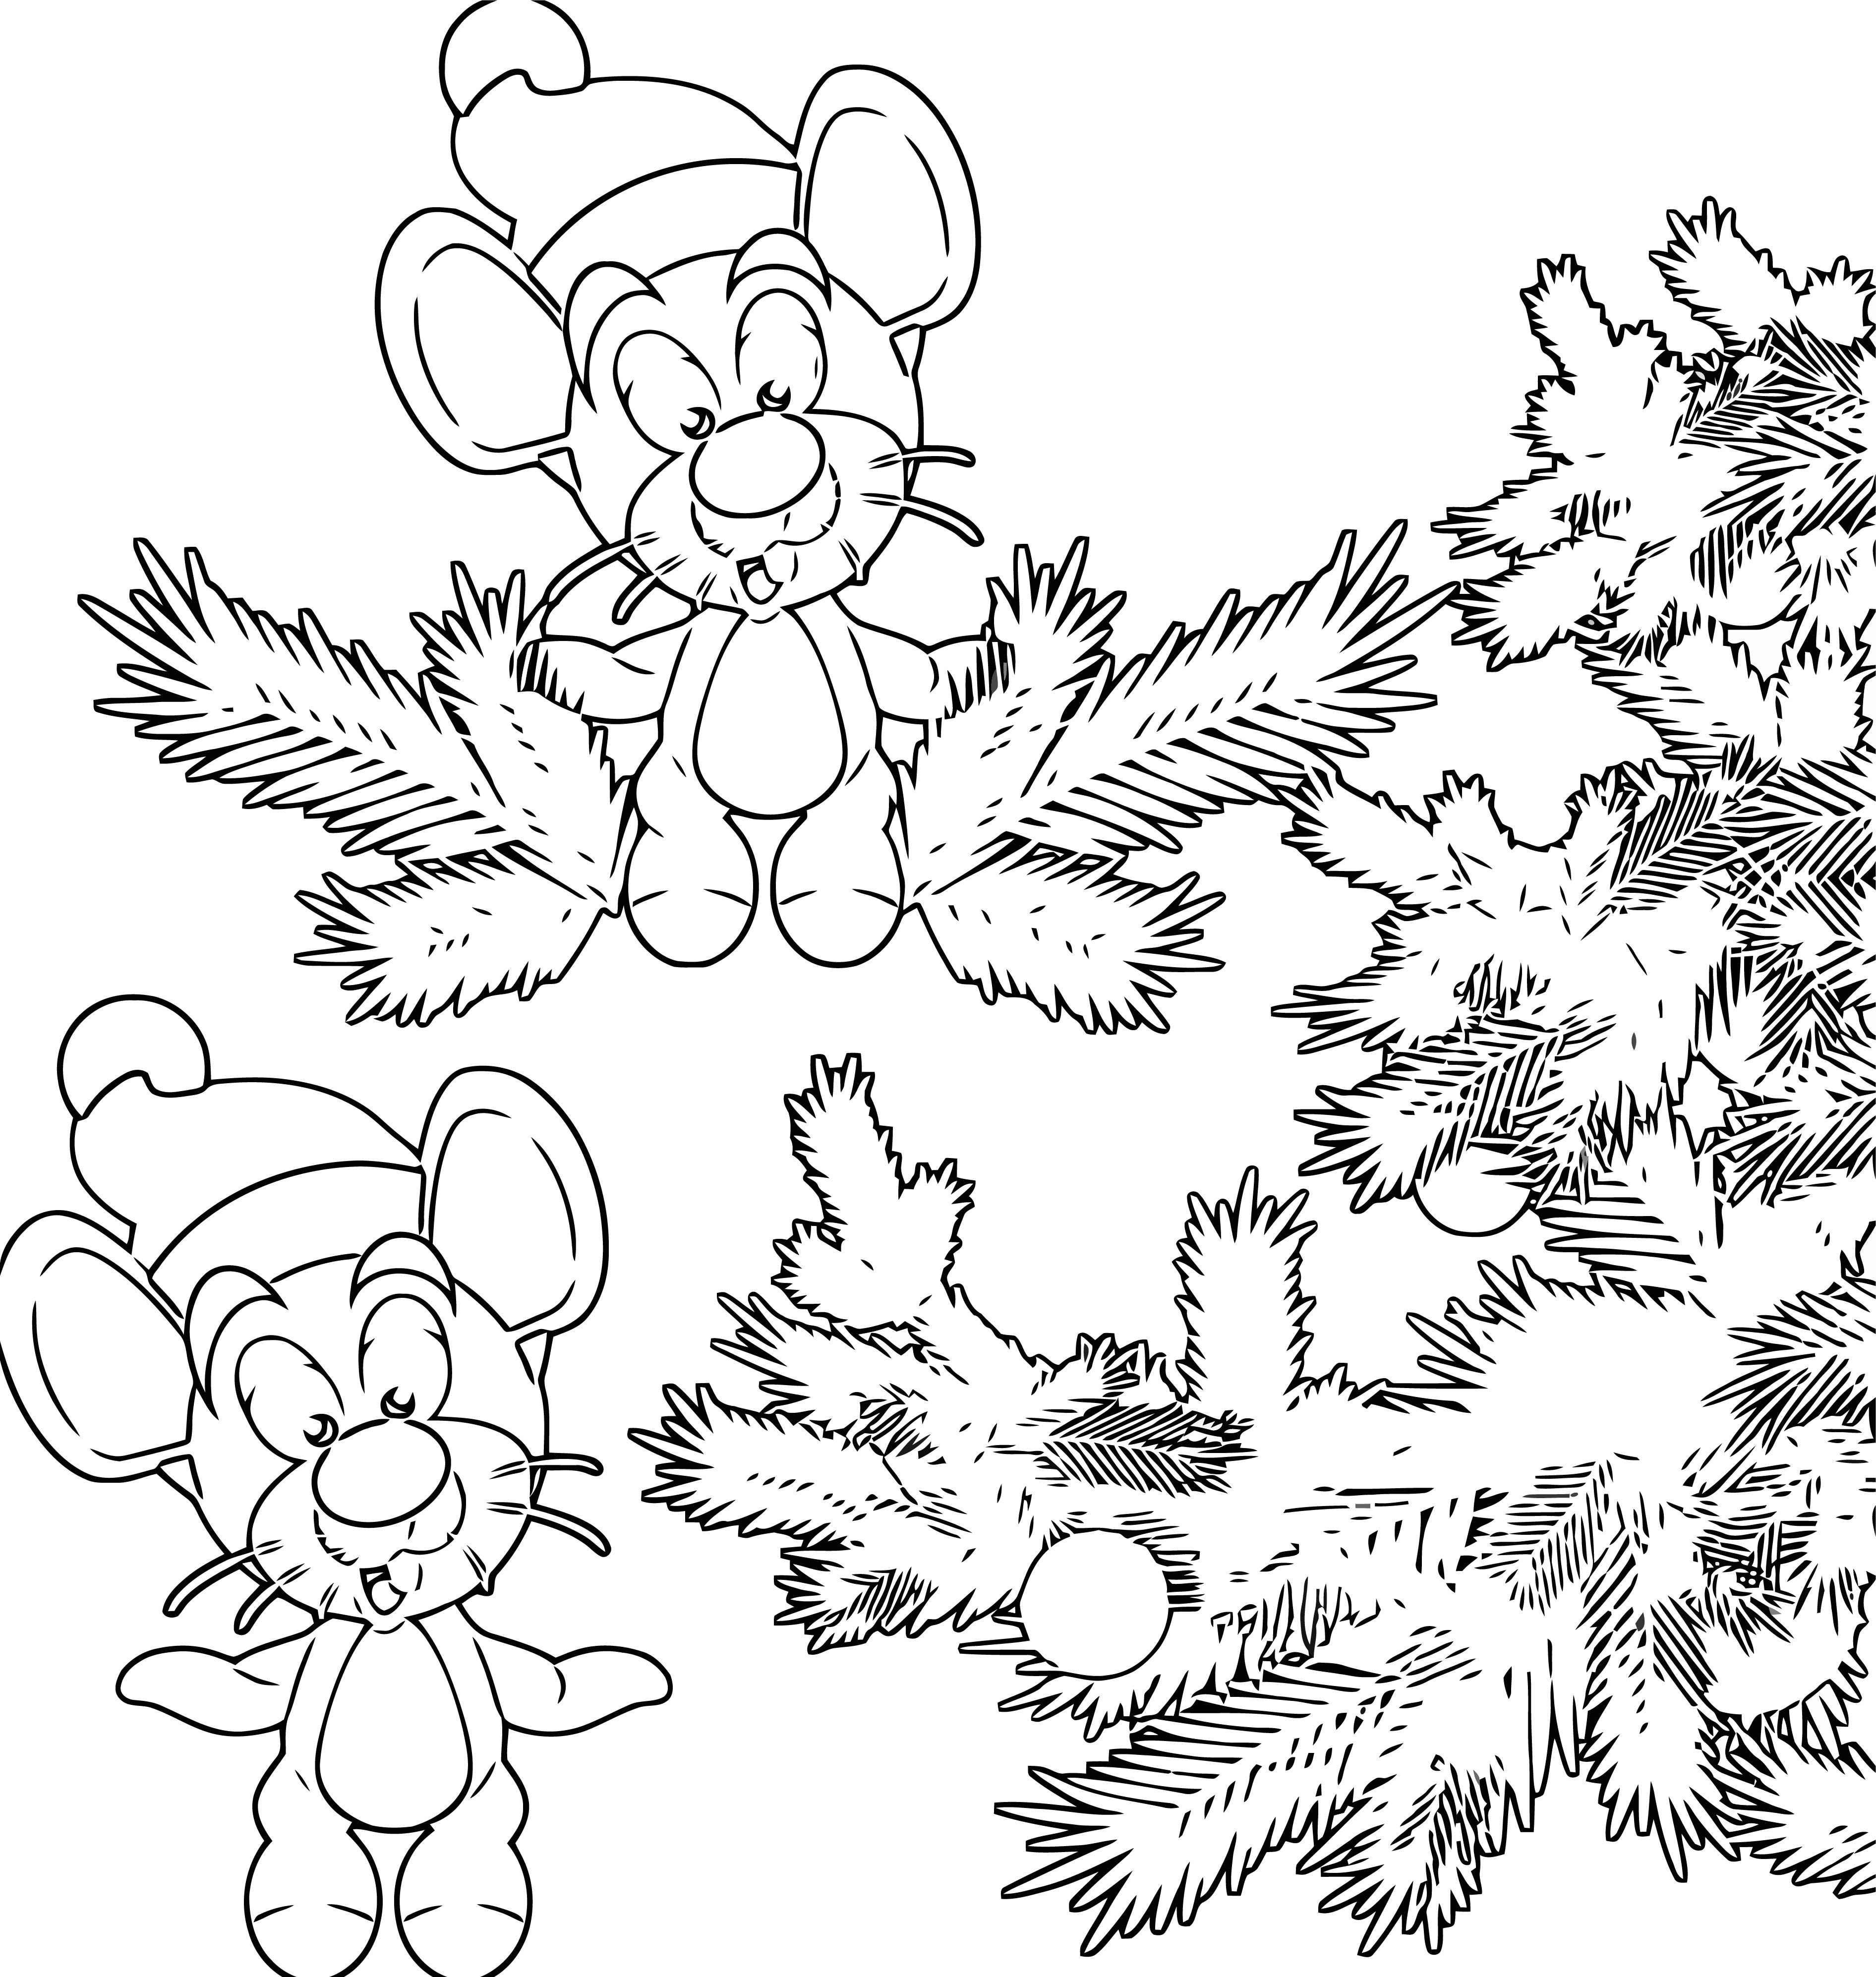 Mouse Jpeg Coloring Page 41